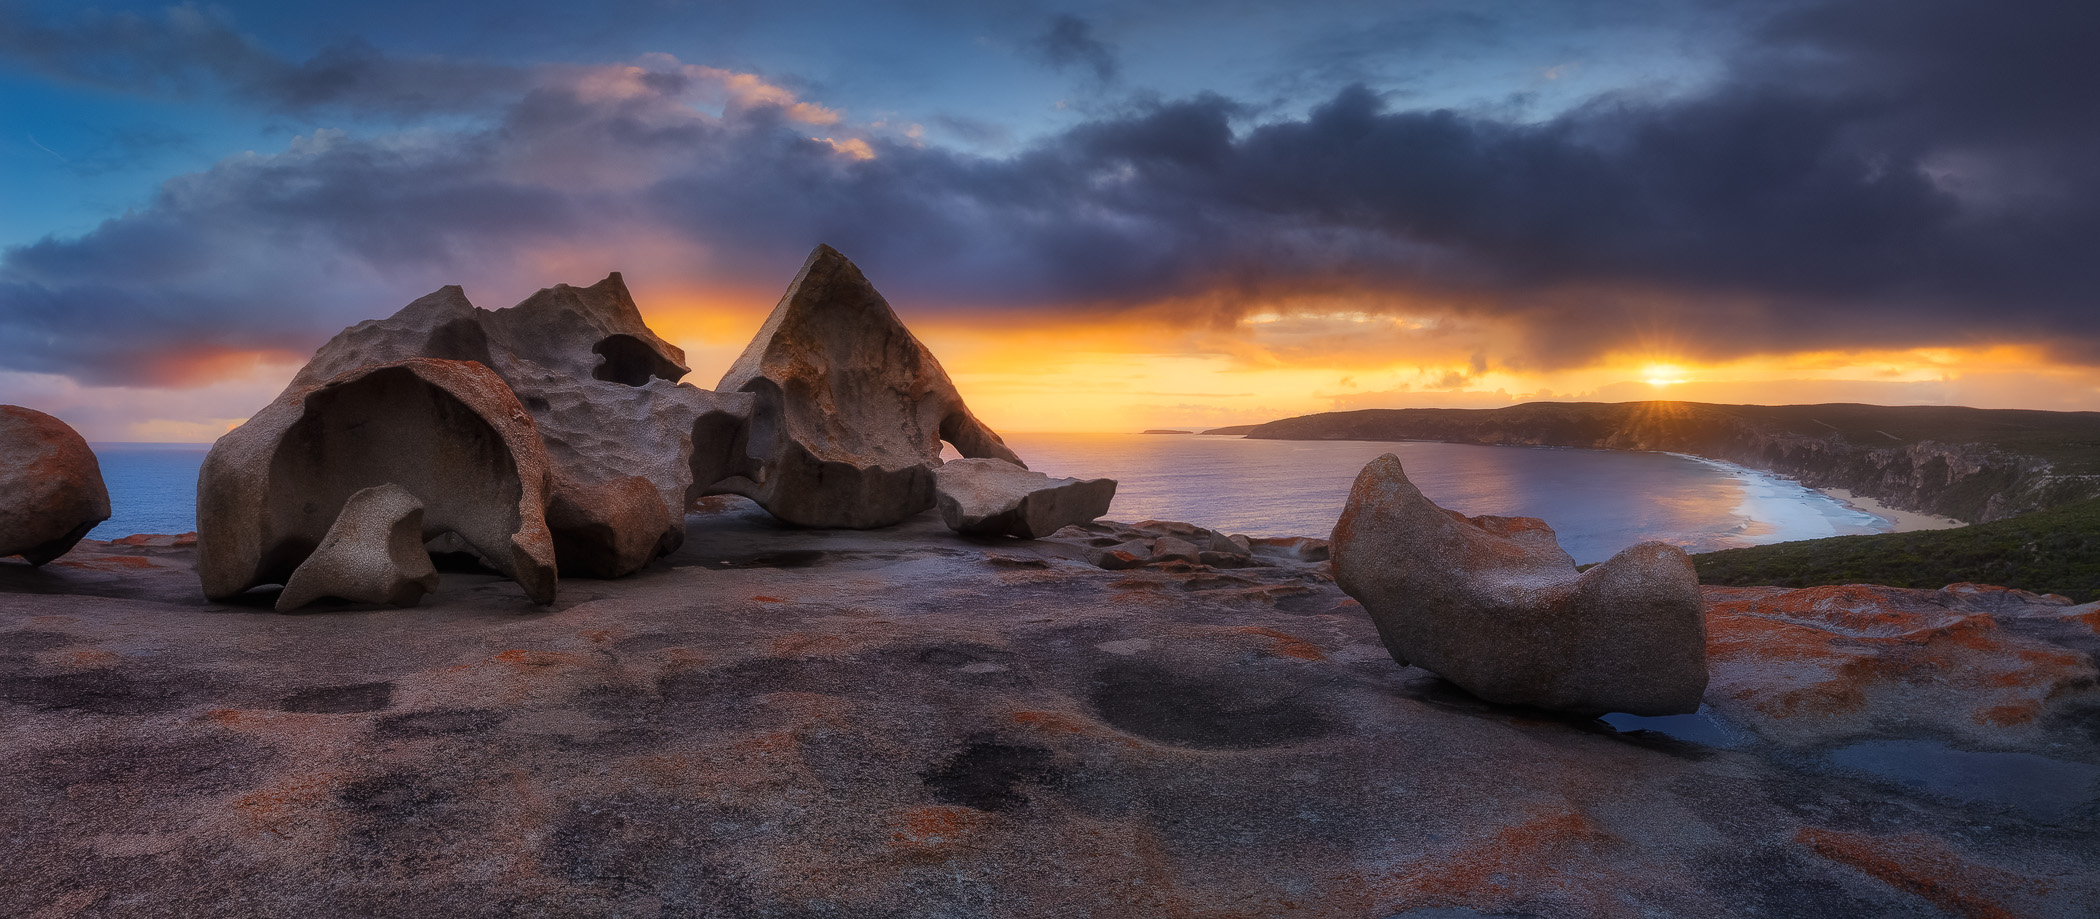 Variable weather made for great conditions at the exposed Remarkable Rocks